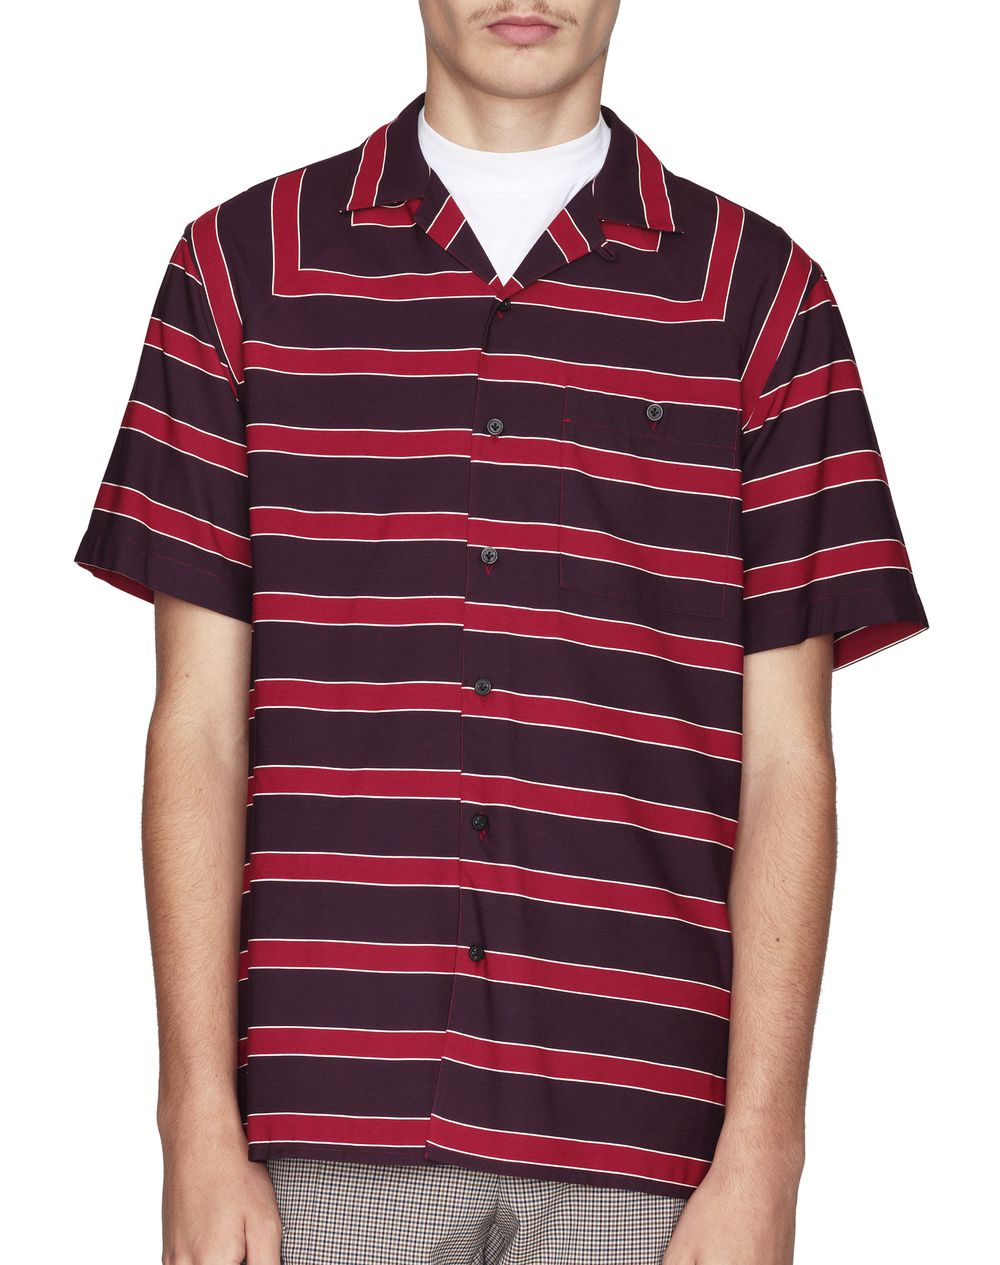 HORIZONTAL STRIPED BOWLING SHIRT - Lanvin